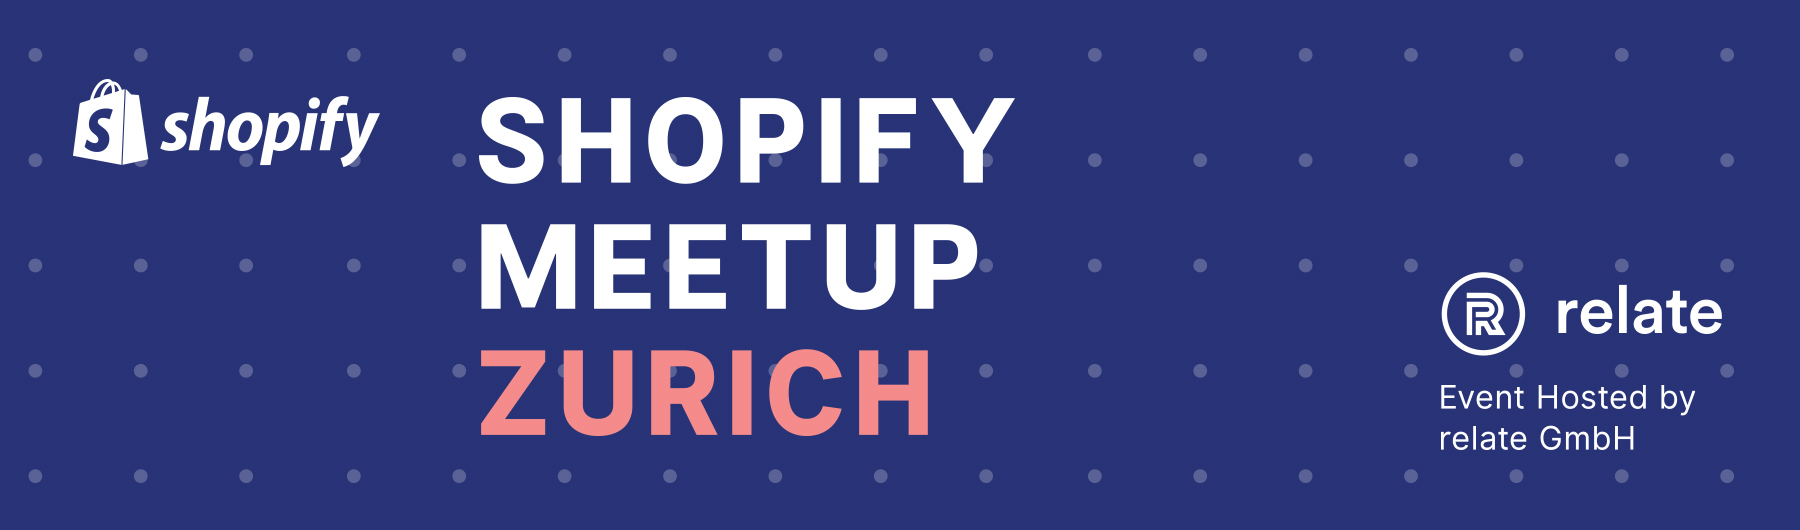 Shopify Meetup Zurich 2018